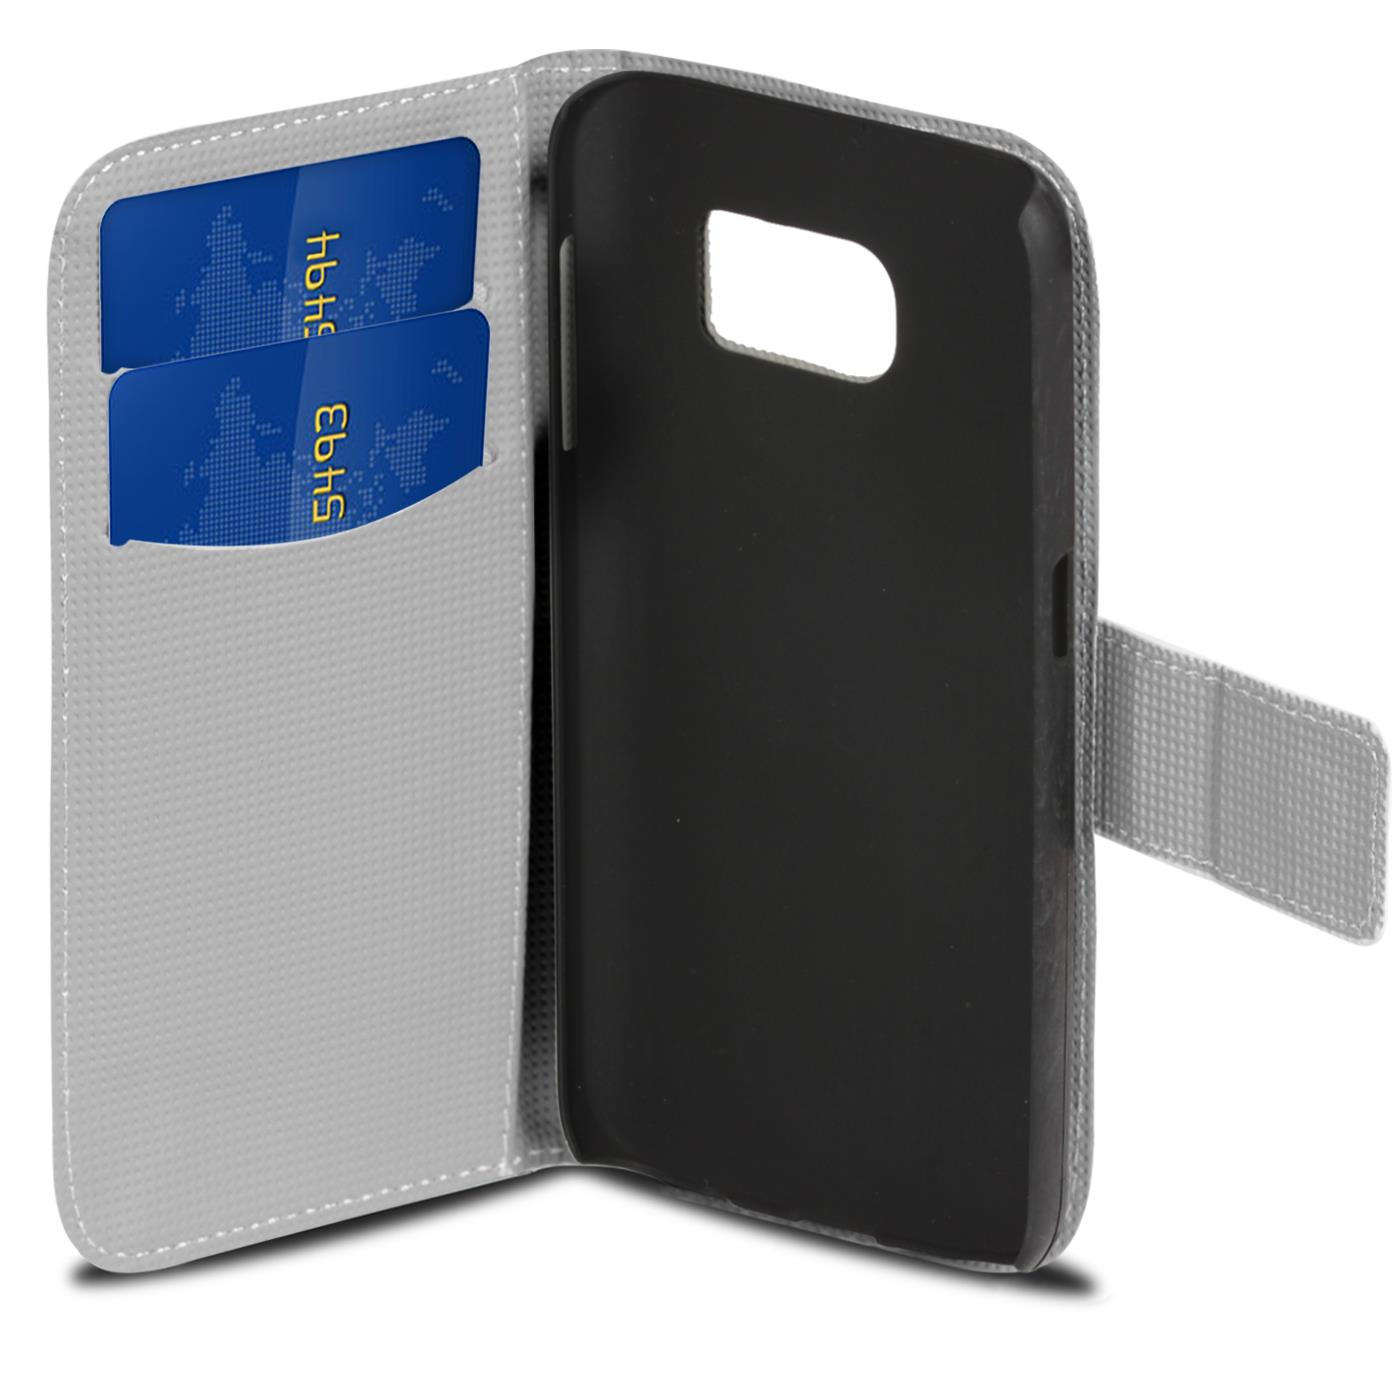 Design-Book-Wallet-Case-for-Samsung-Galaxy-S7-Edge-PU-Leather-Flip-Cover-Holder thumbnail 3